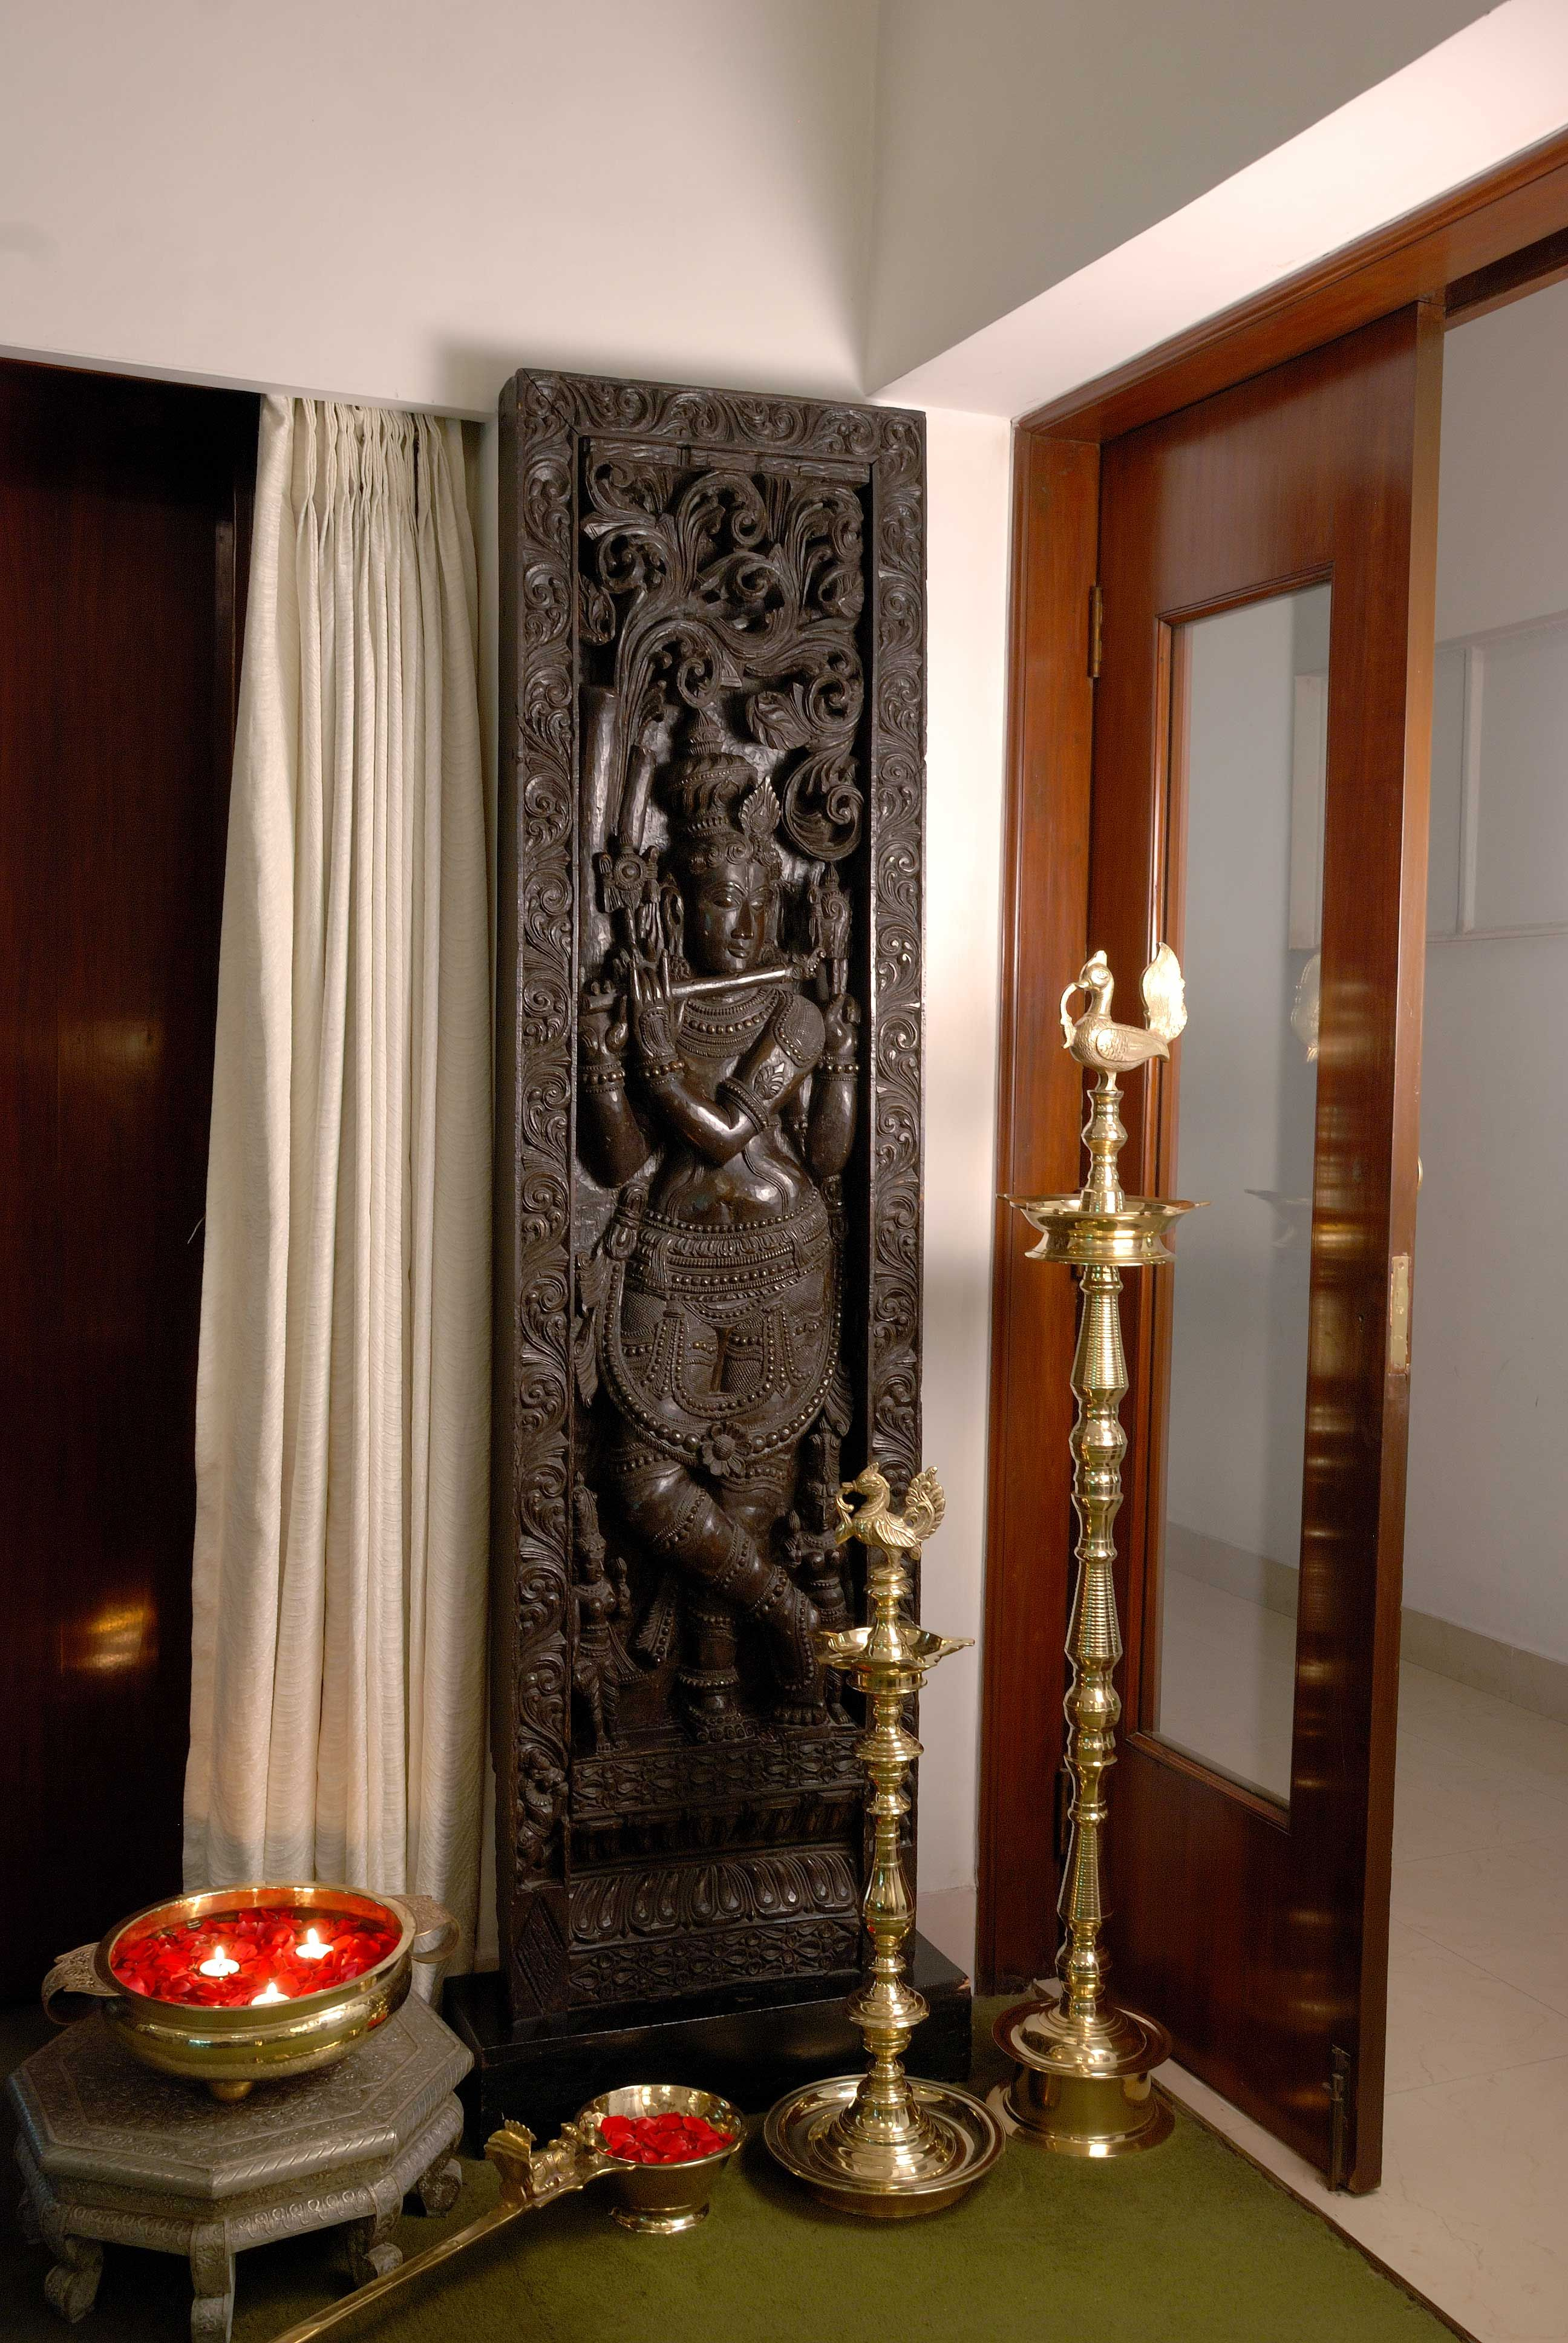 Explore India Home Decor Asian And More